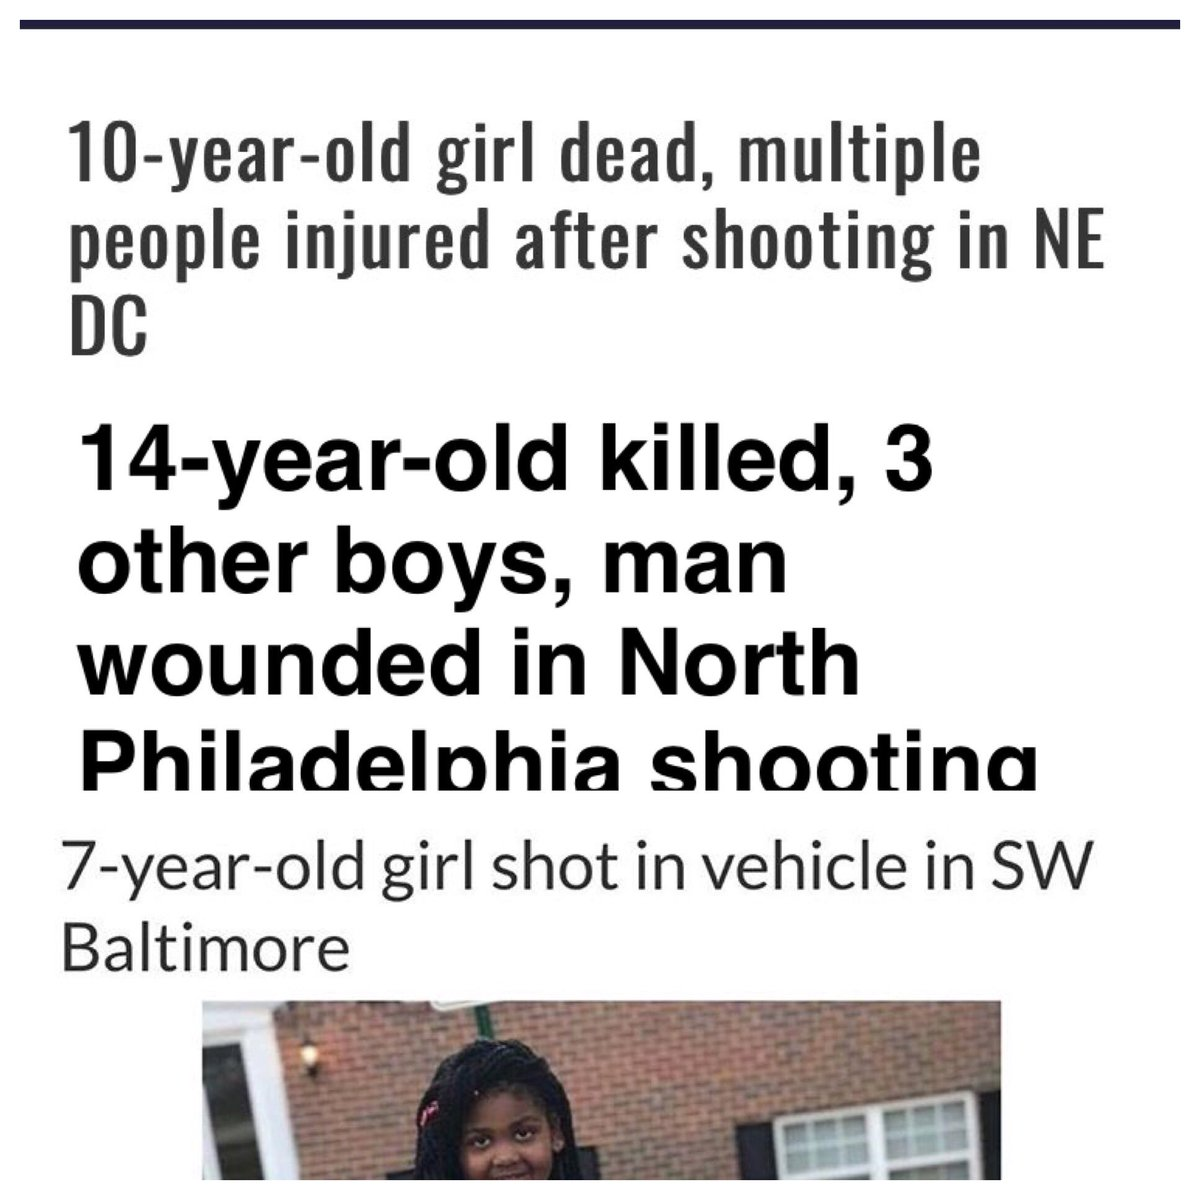 Woke up this morning with a lot on my mind. We have babies dying because dudes can't put the guns down. I'm a firm believer in taking care of home first before you take care of anything else. We need to take better care of our communities. Show more love and respect to each other